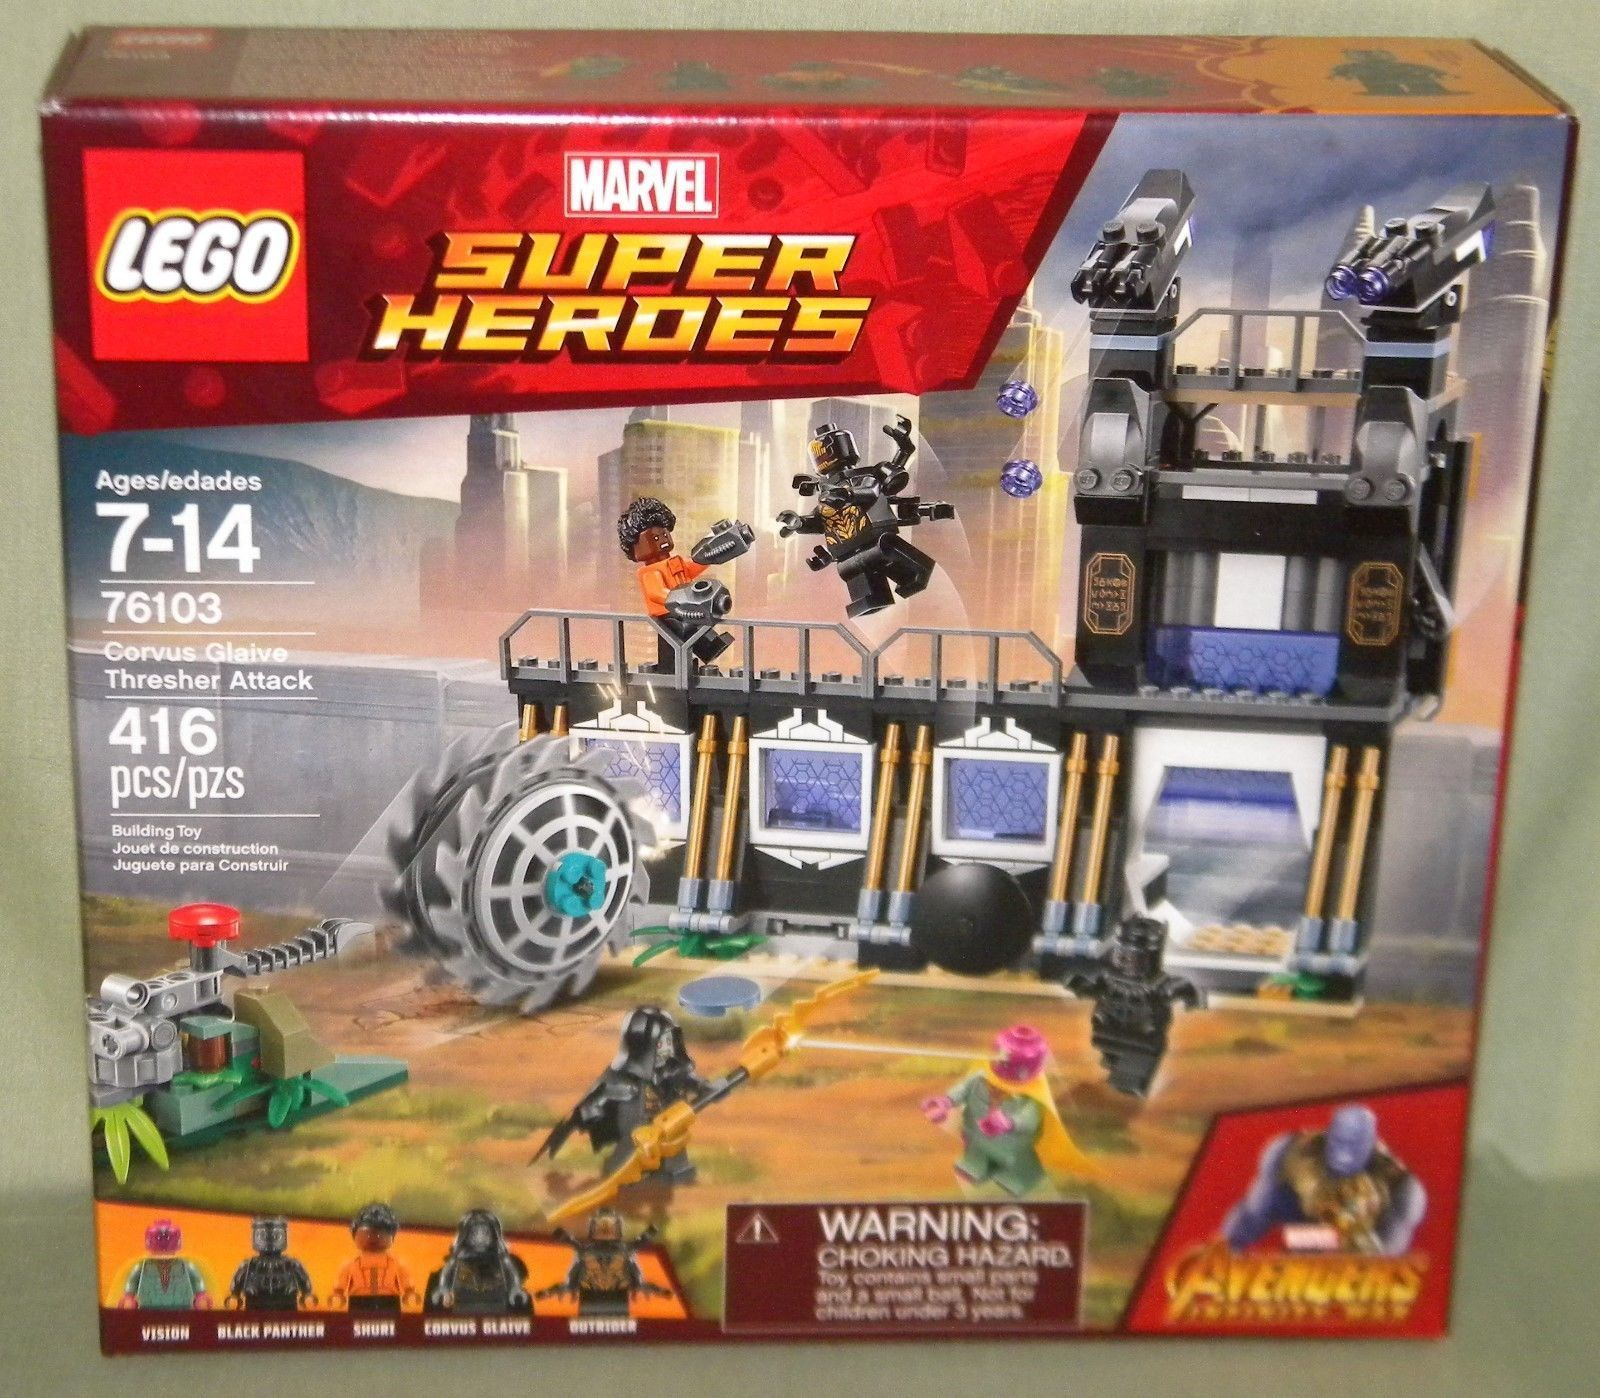 Corvus Glaive Thresher Attack Avengers Infinity War Lego 76103 Vision Panther Corvus Glaive Lego Marvel Superheroes Marvel